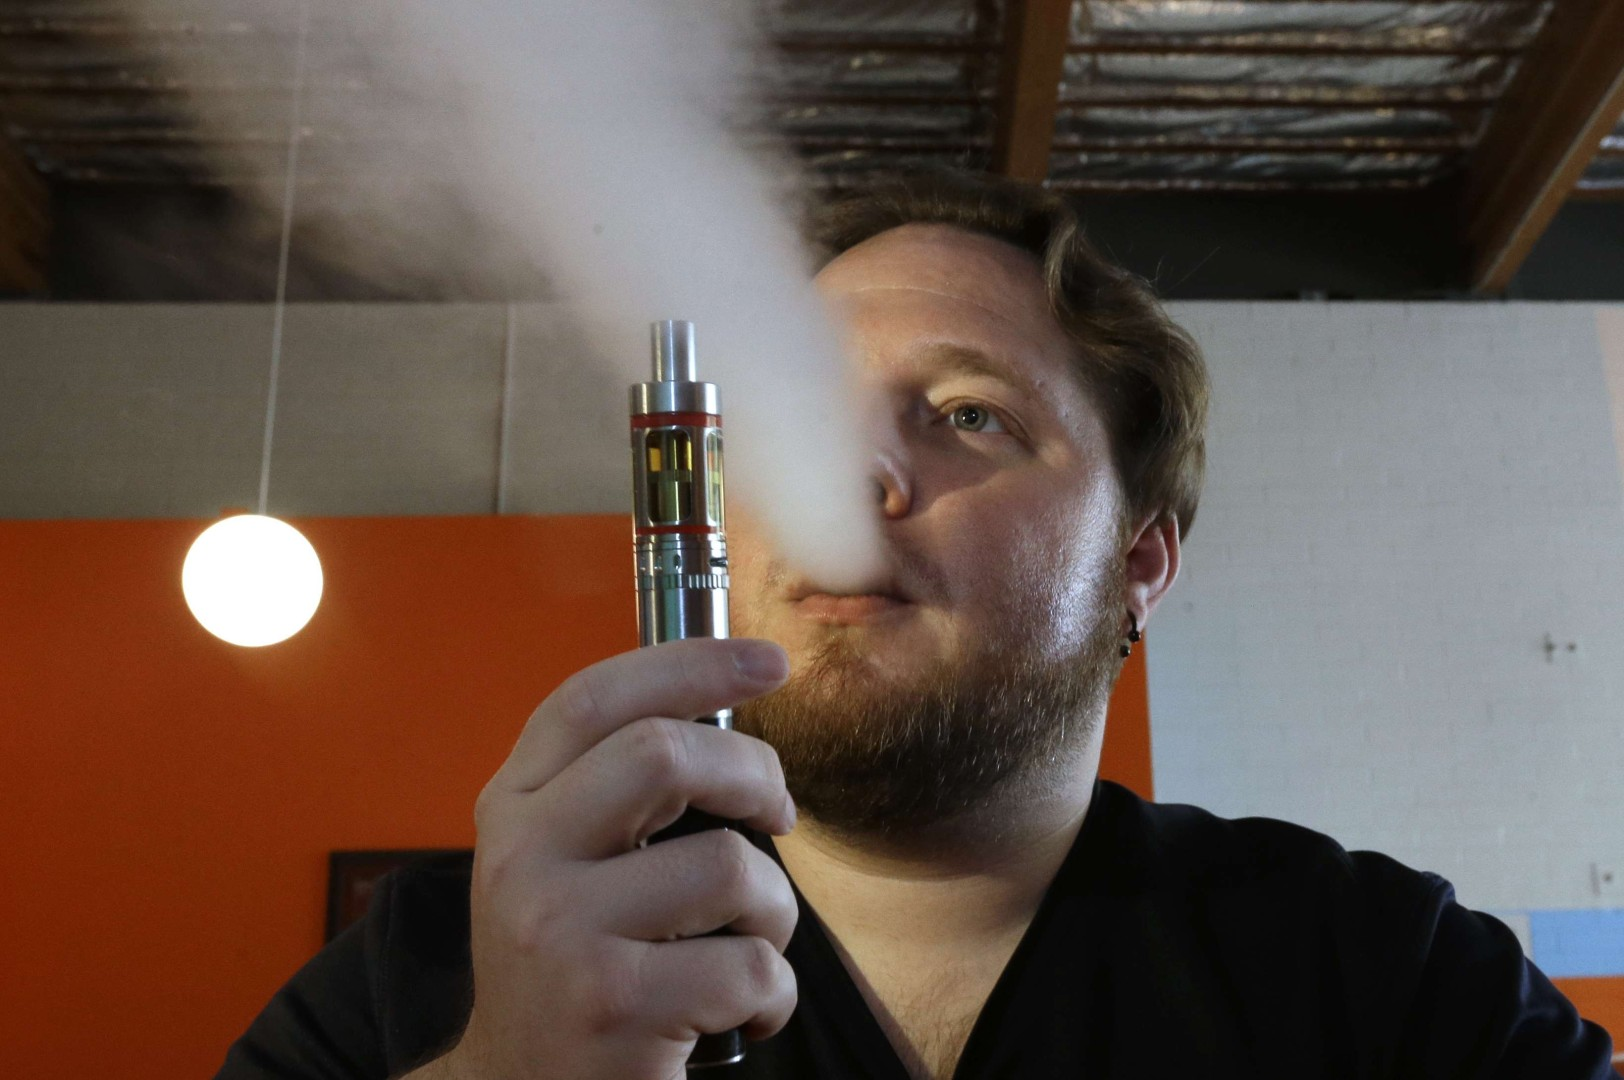 US bans e-cigarette, cigar sales to those under 18 years old